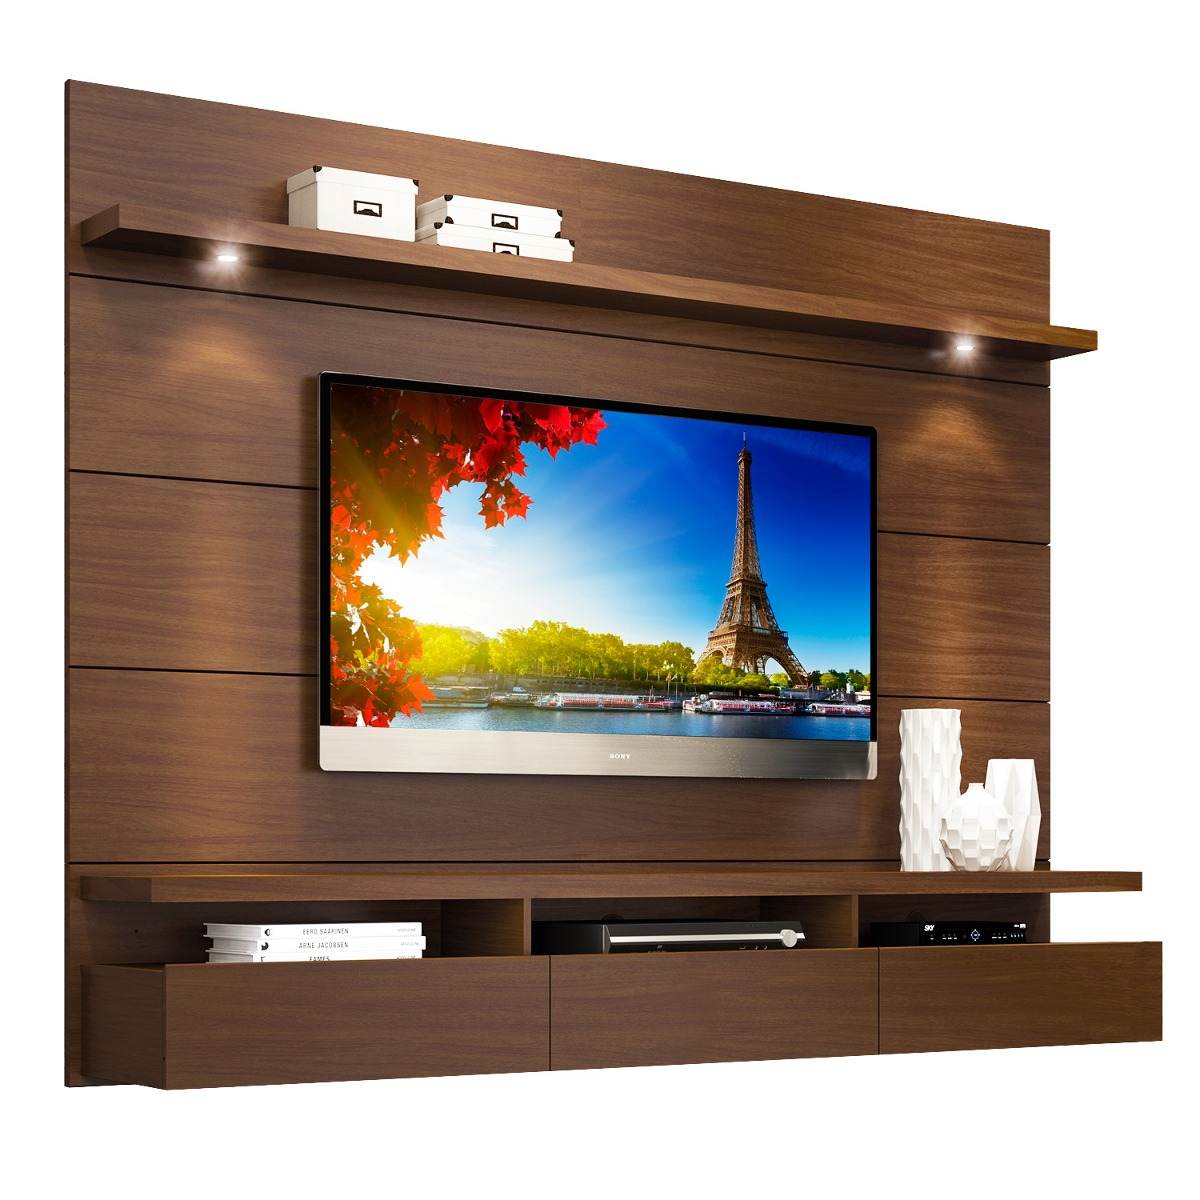 Mueble Tv Pared Modular Tv Led Lcd 60 Pulg Mueble De Pared Home 1 8 Horizon